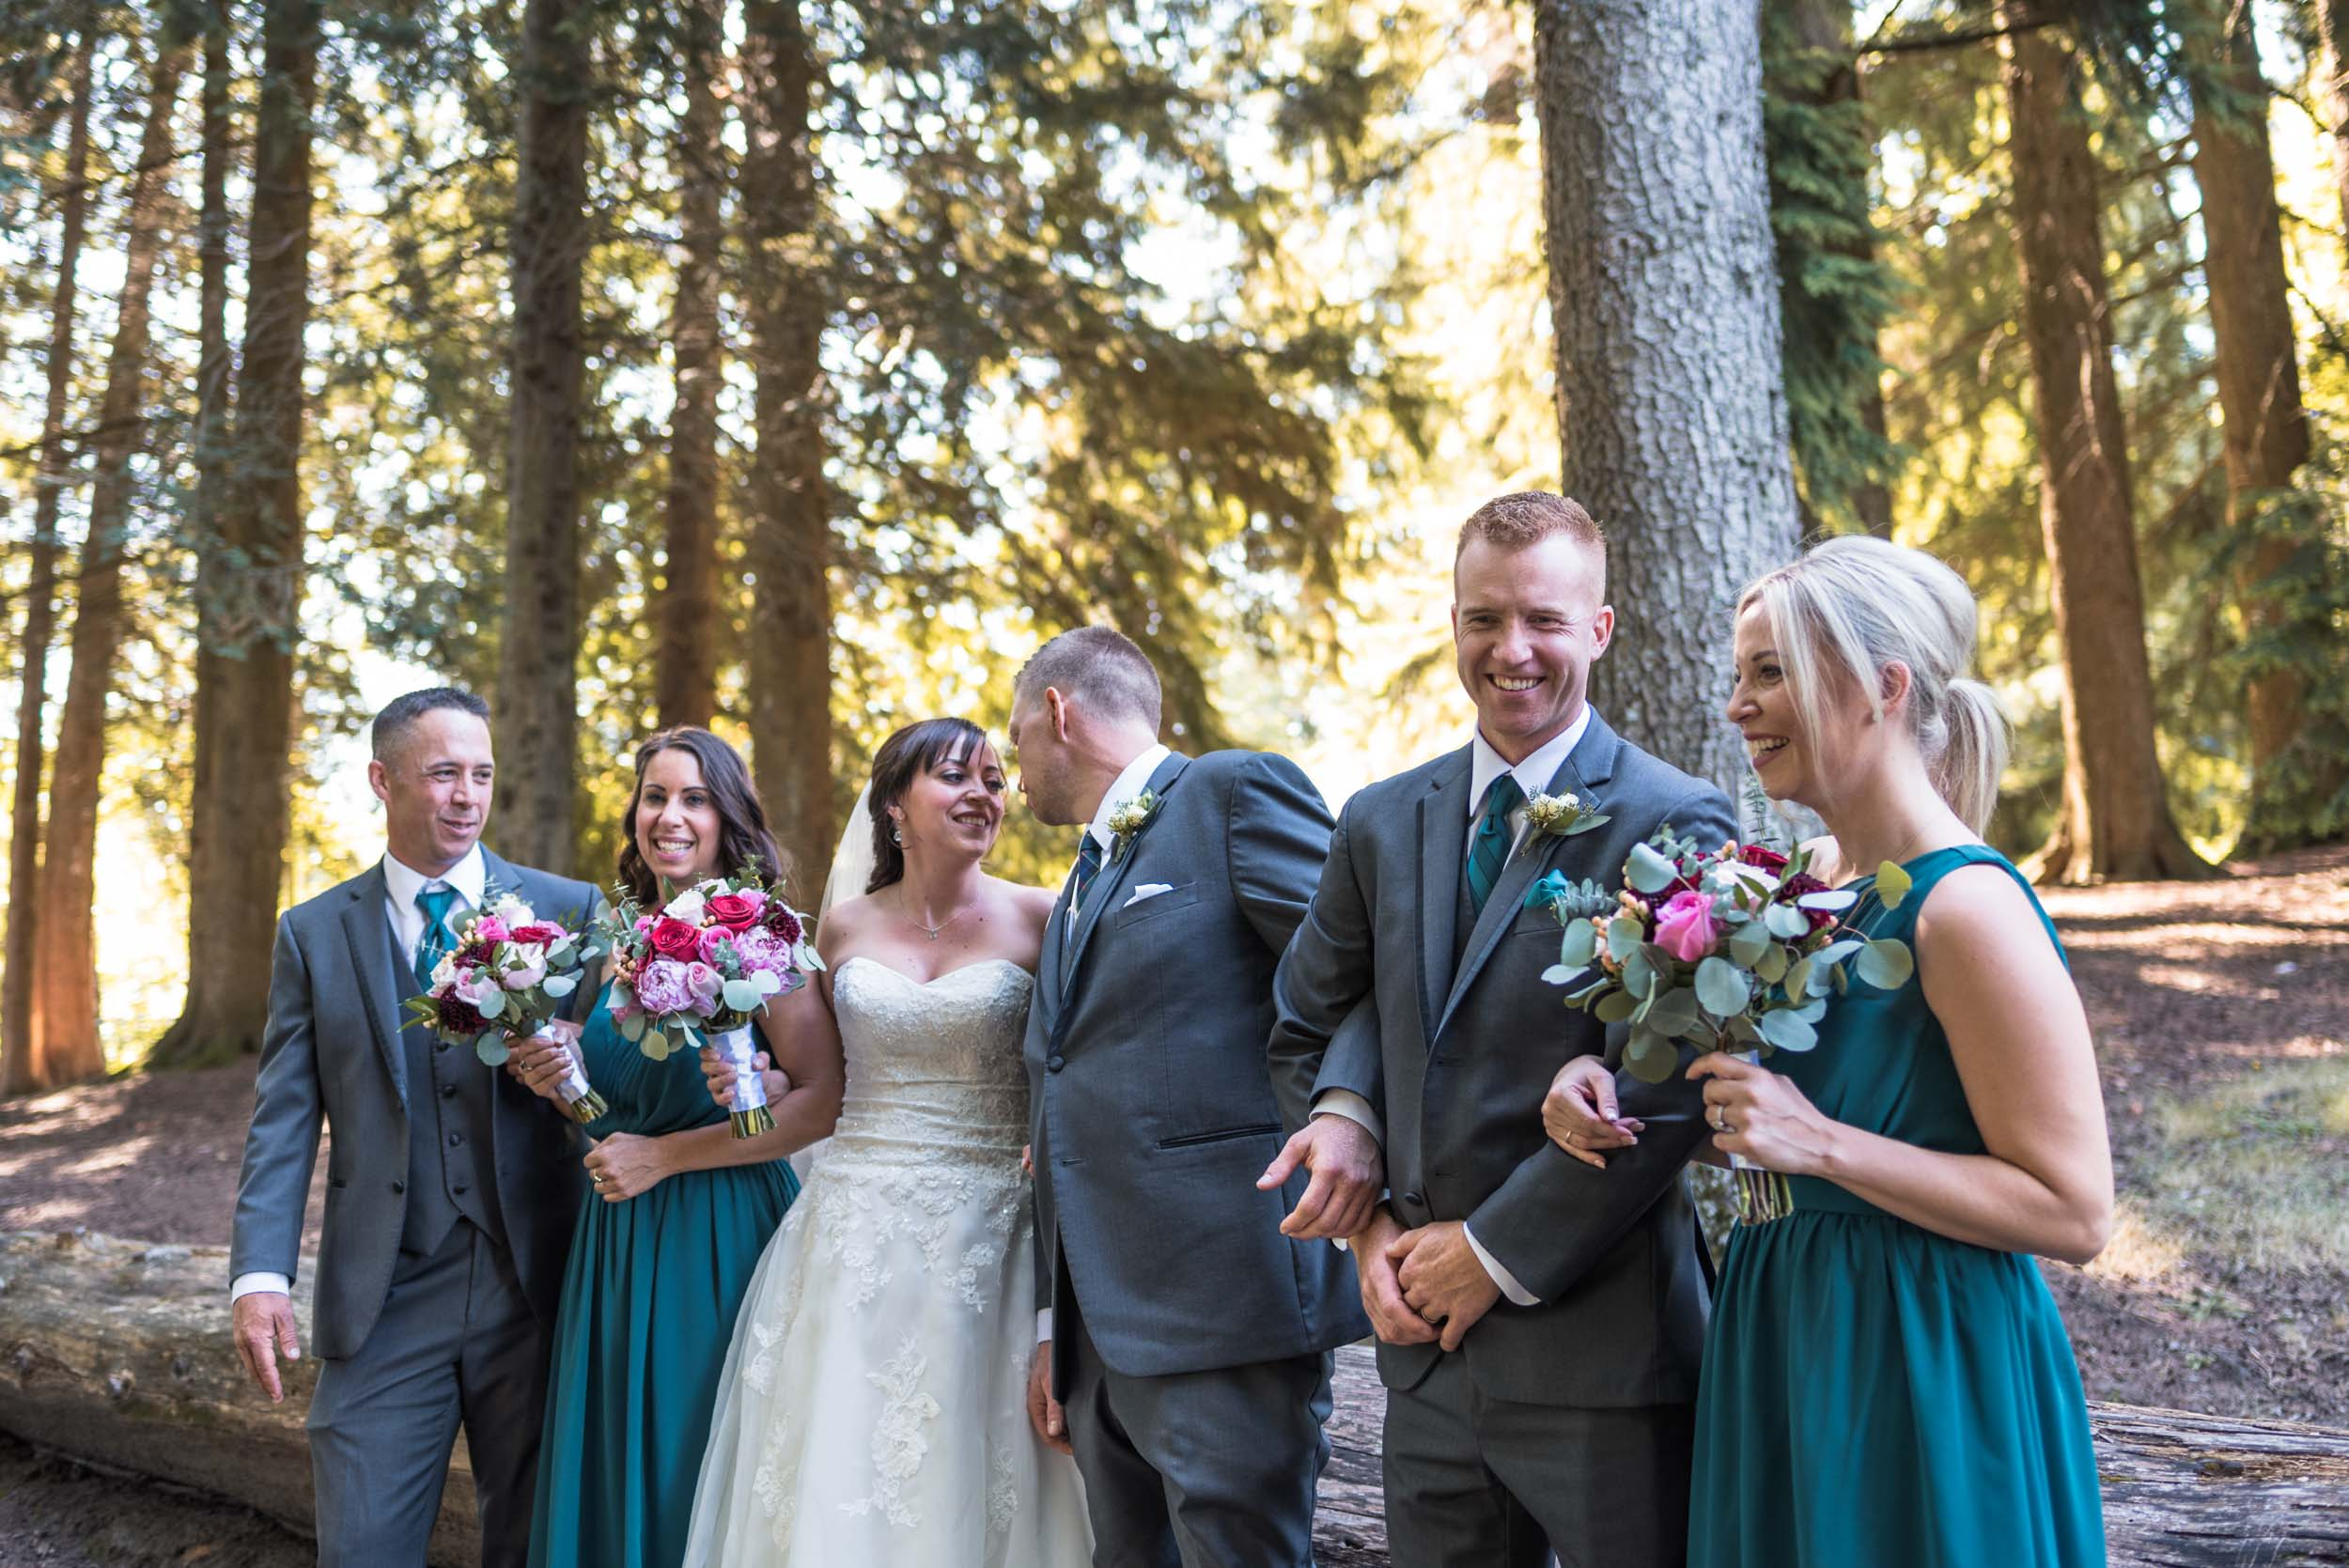 Bridal party in forest